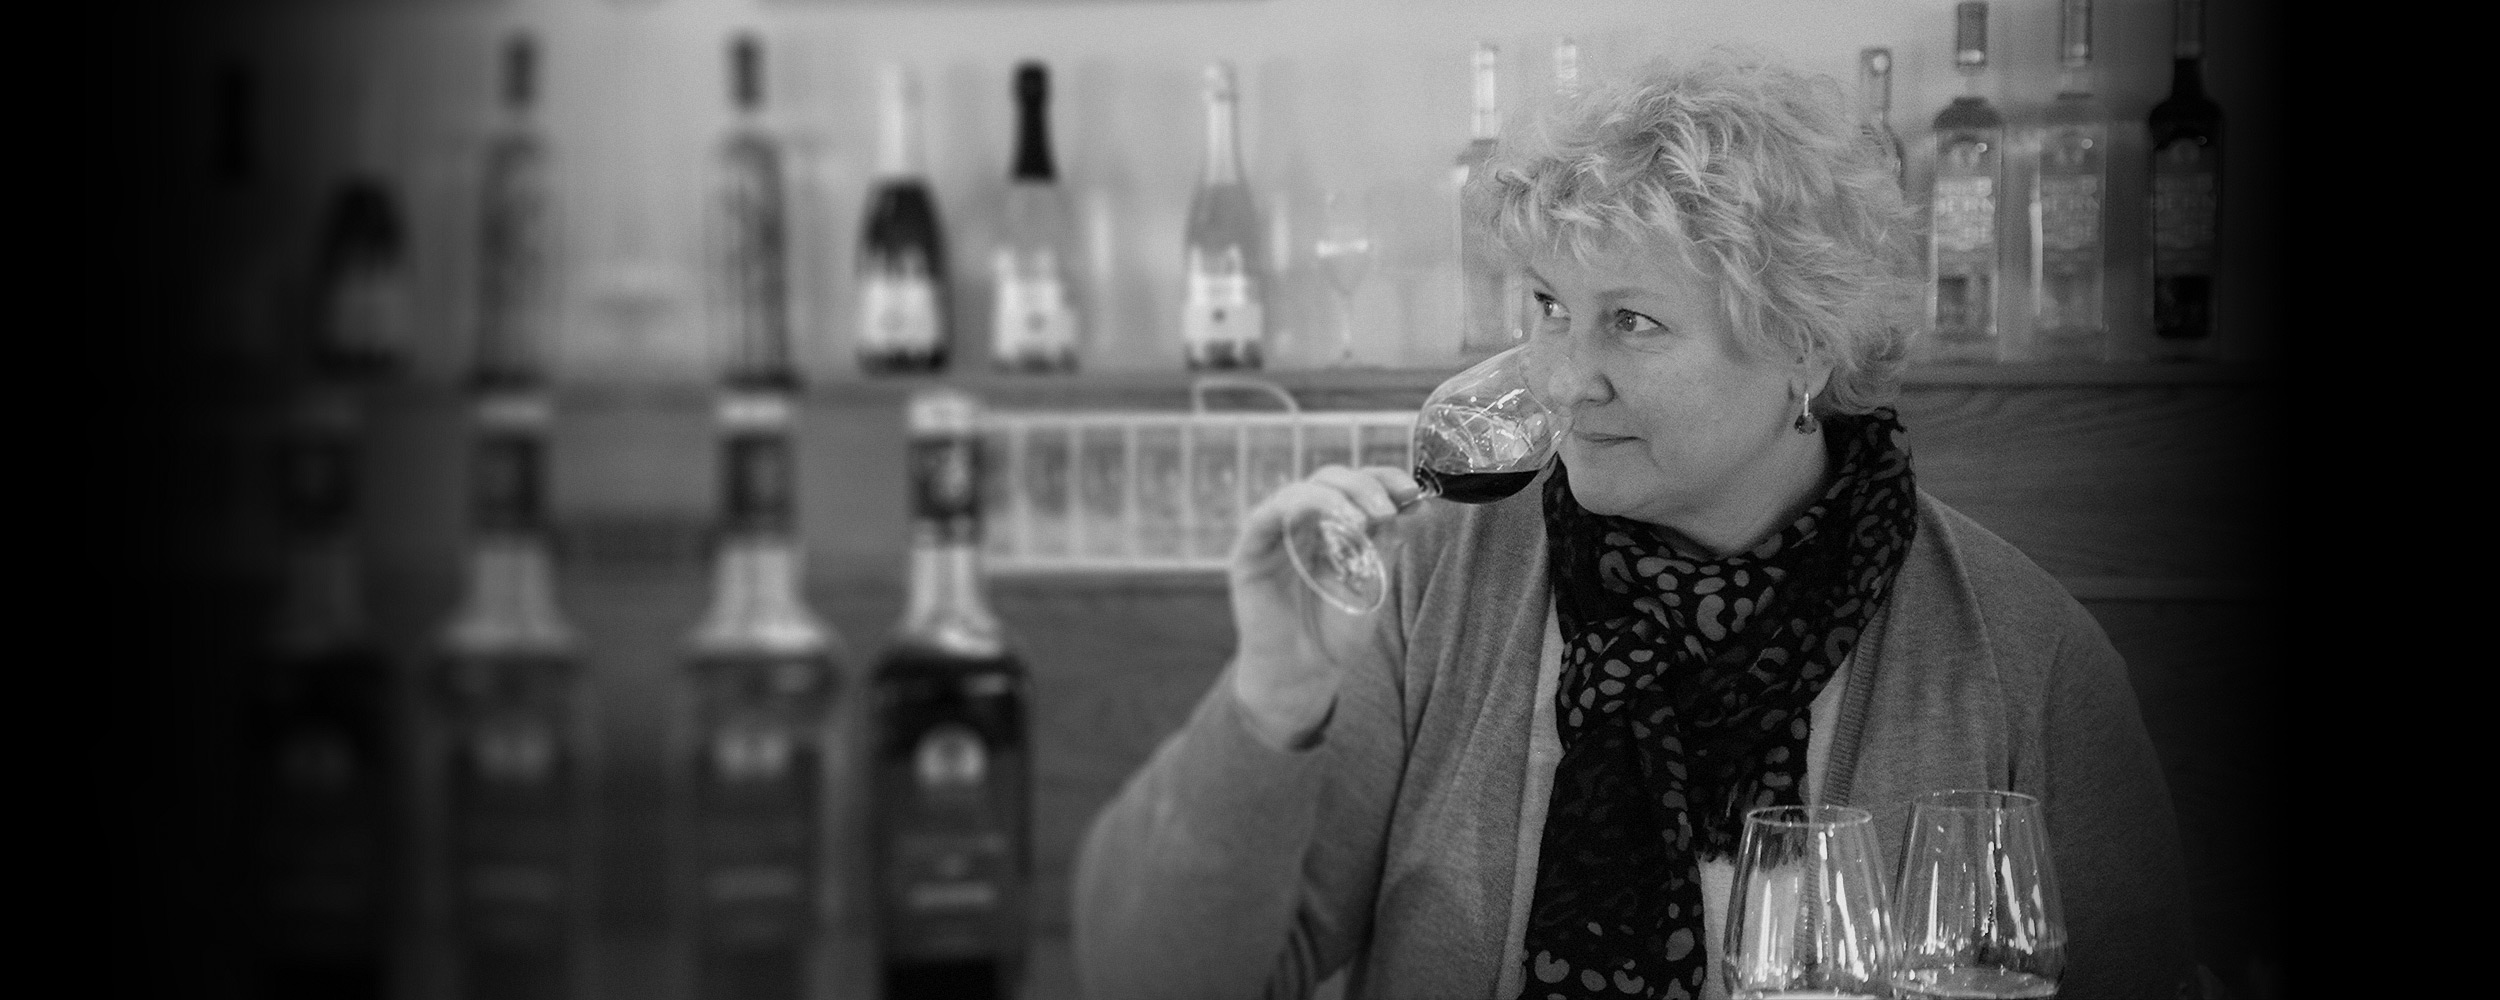 Brigitte Guiet Head of the wine cellar at Chateau de Berne cotes de provence ©DR